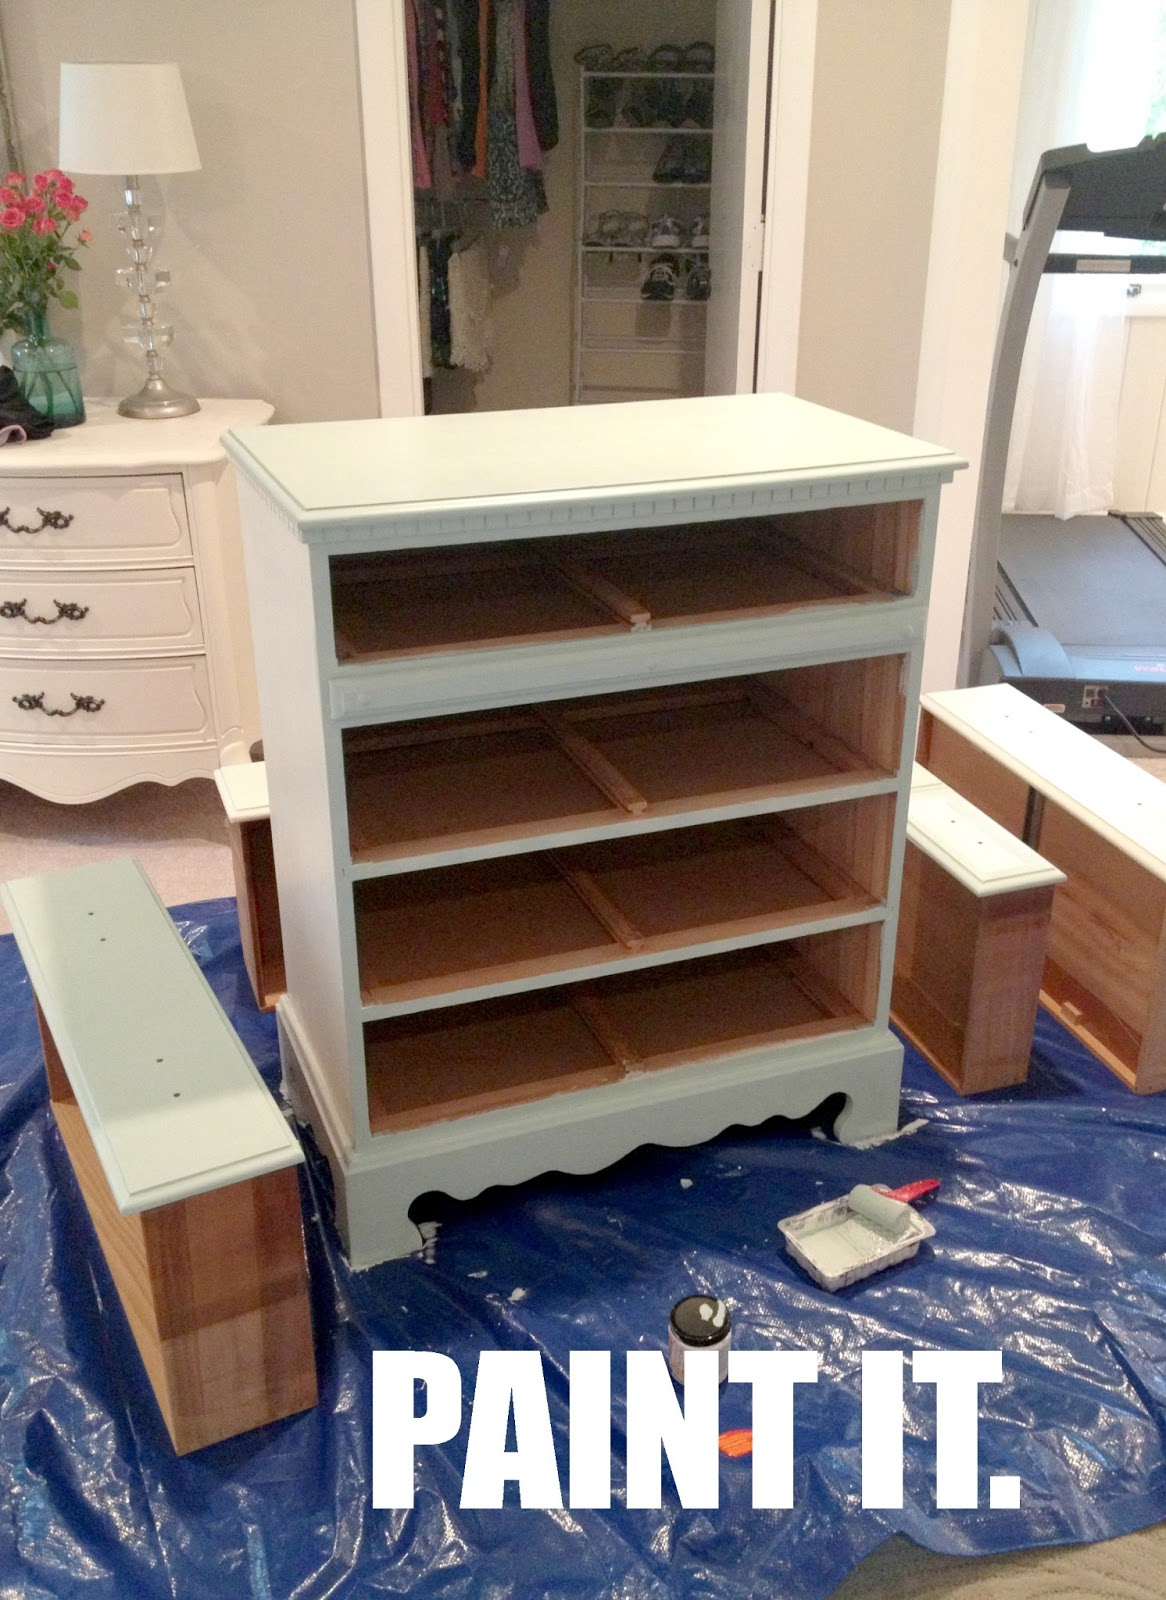 Astonishing Livelovediy How To Paint Laminate Furniture In 3 Easy Steps Interior Design Ideas Jittwwsoteloinfo